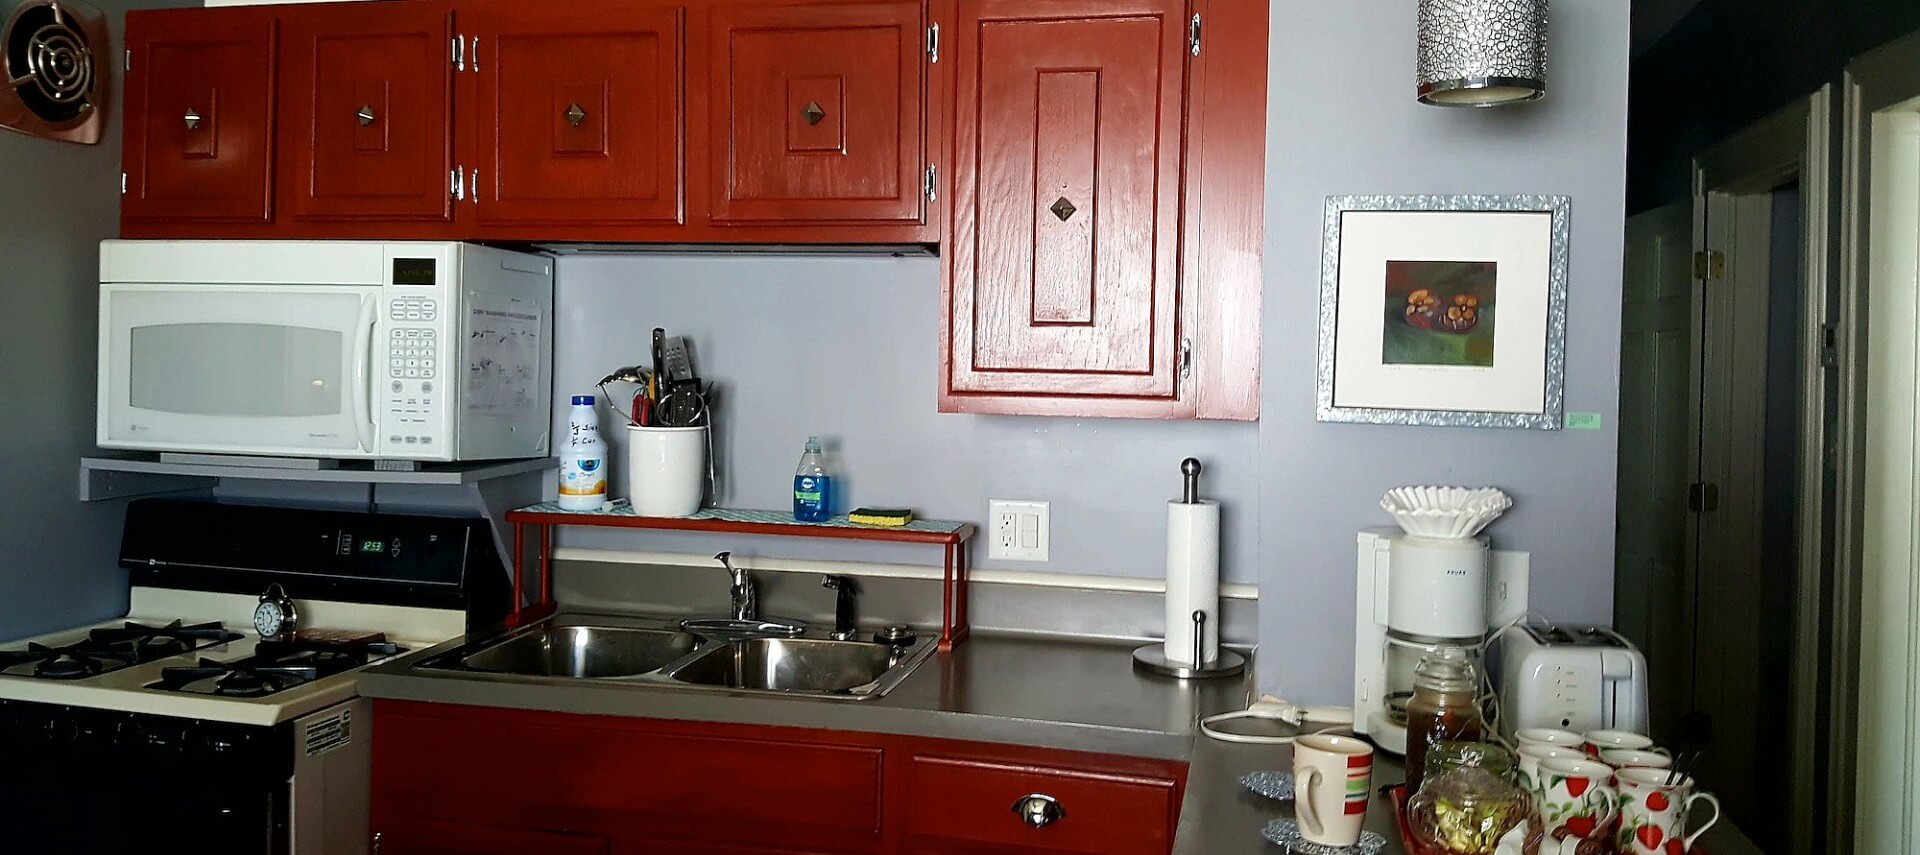 Kitchen with cherry cabinets, a gas stove and microwave and coffee station on the bar.